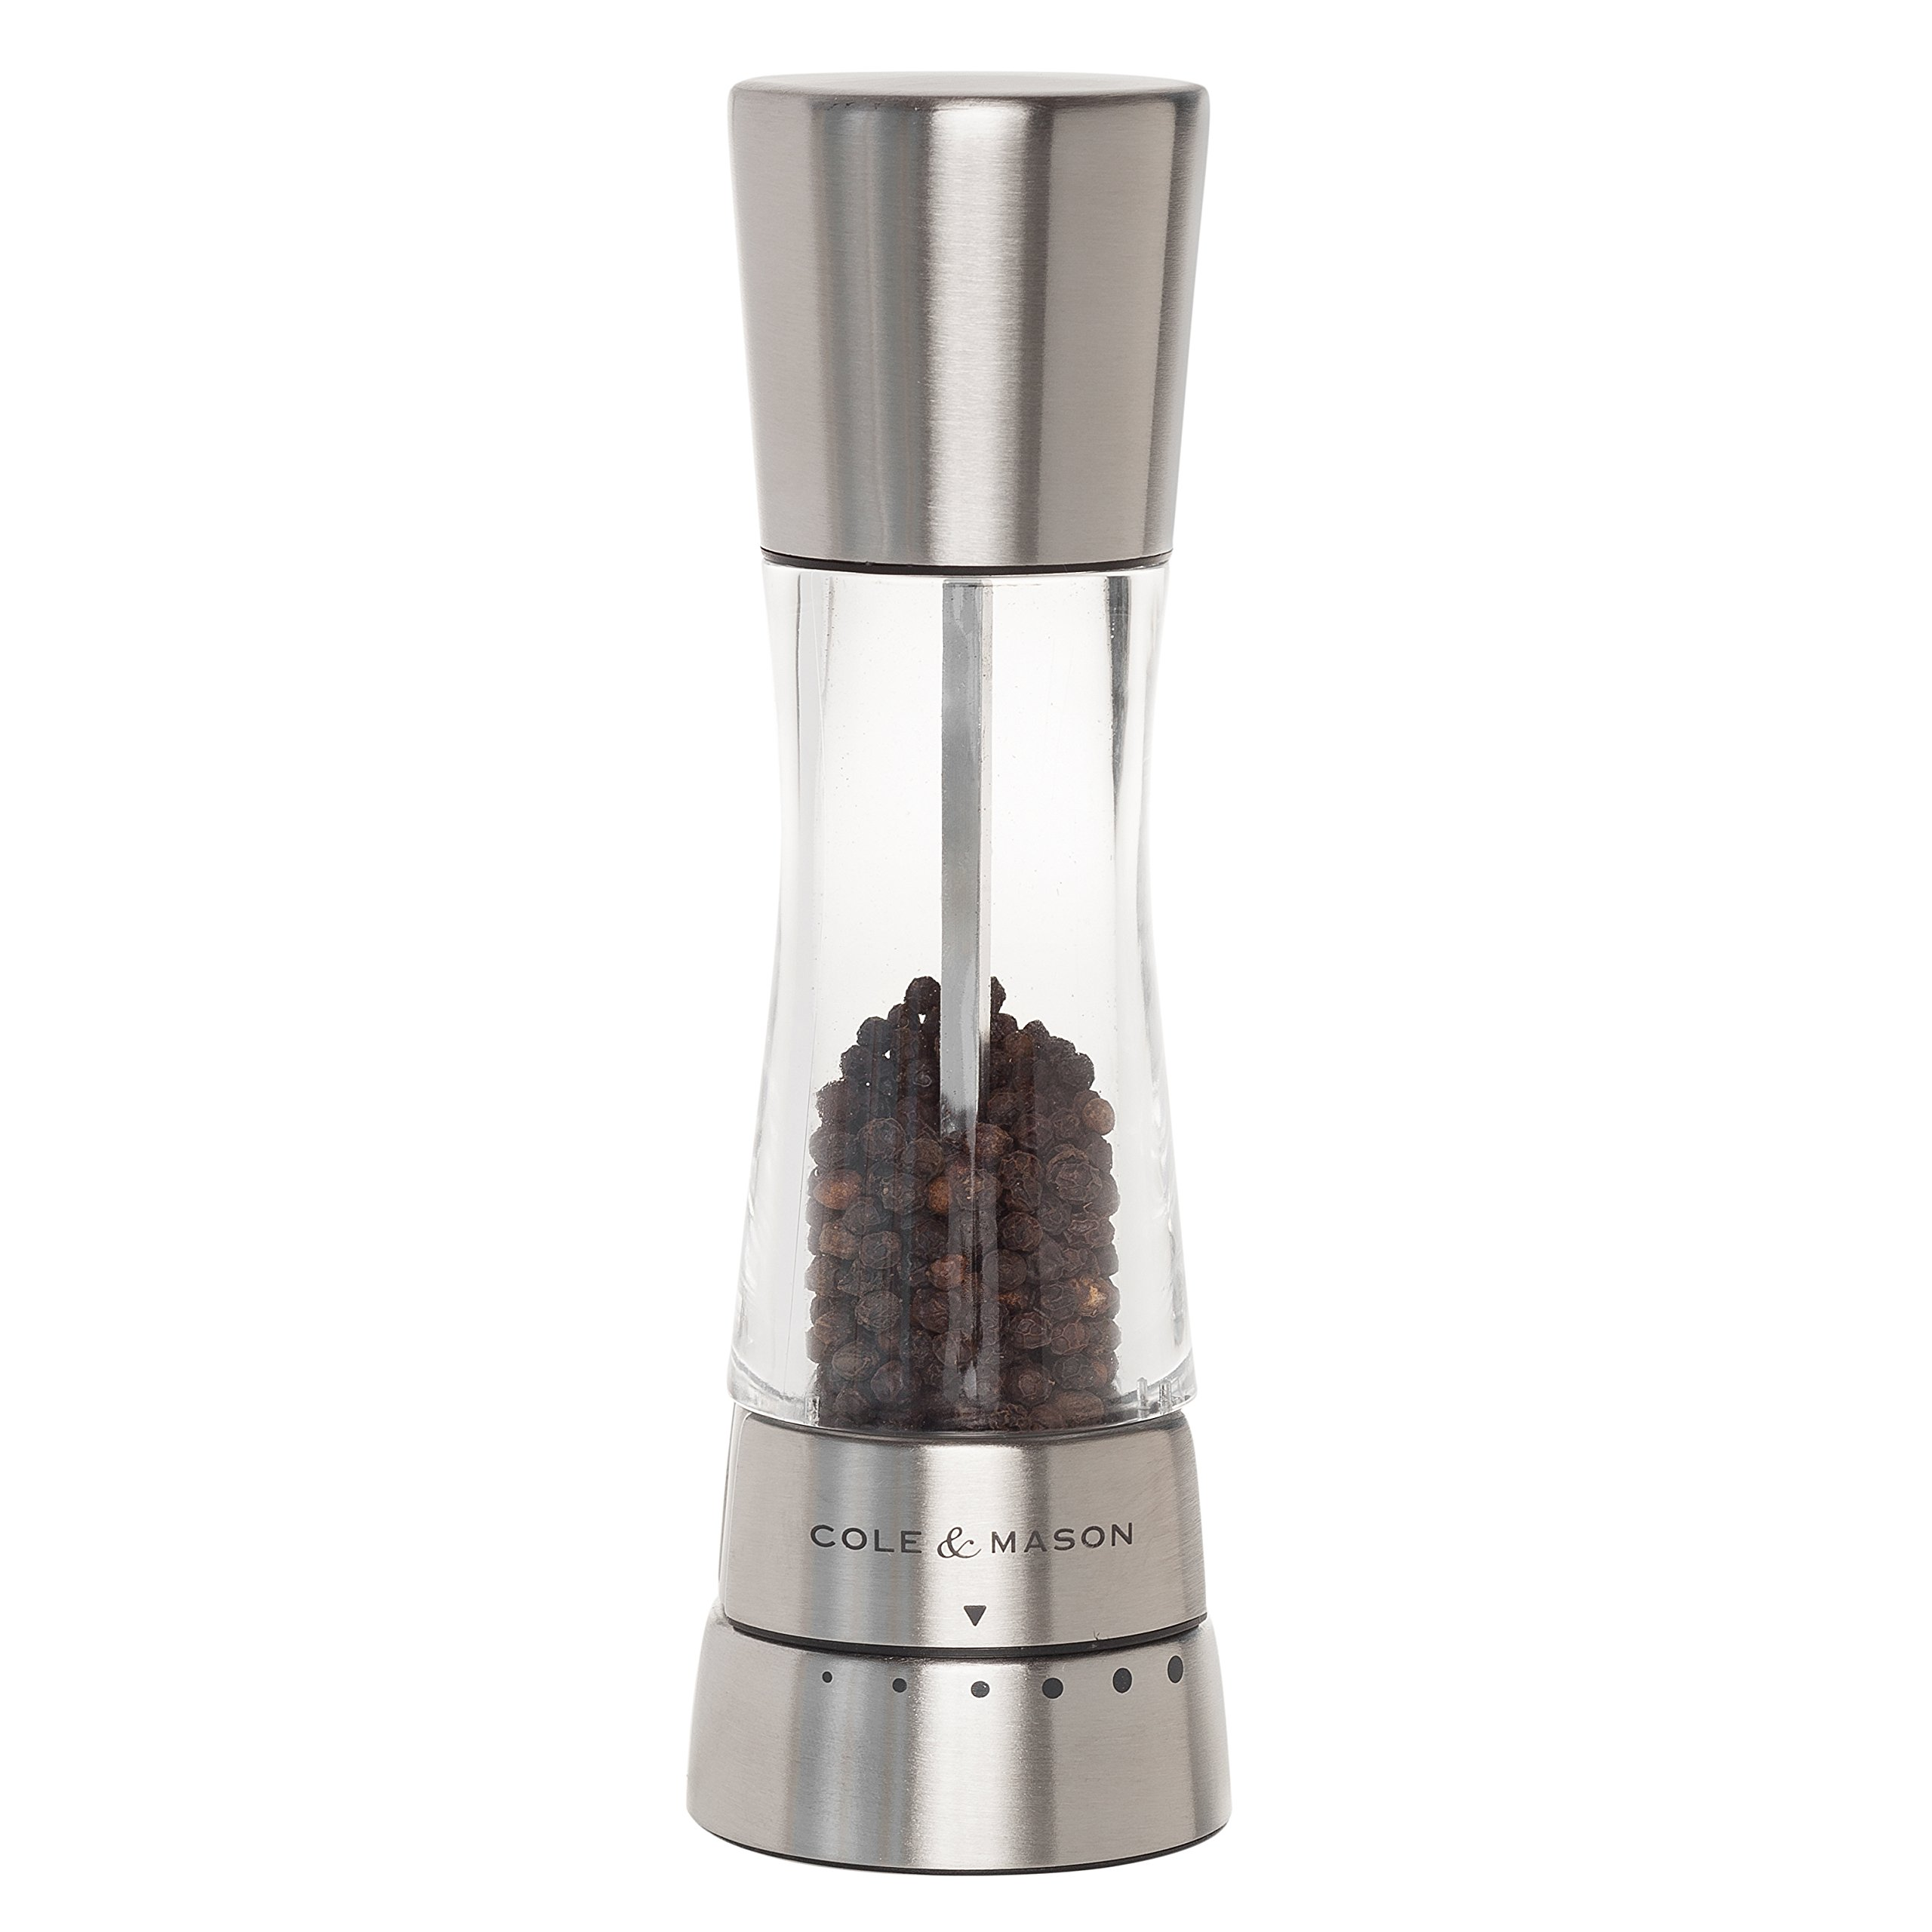 COLE & MASON Derwent Pepper Grinder - Stainless Steel Mill Includes Gourmet Precision Mechanism and Premium Peppercorns